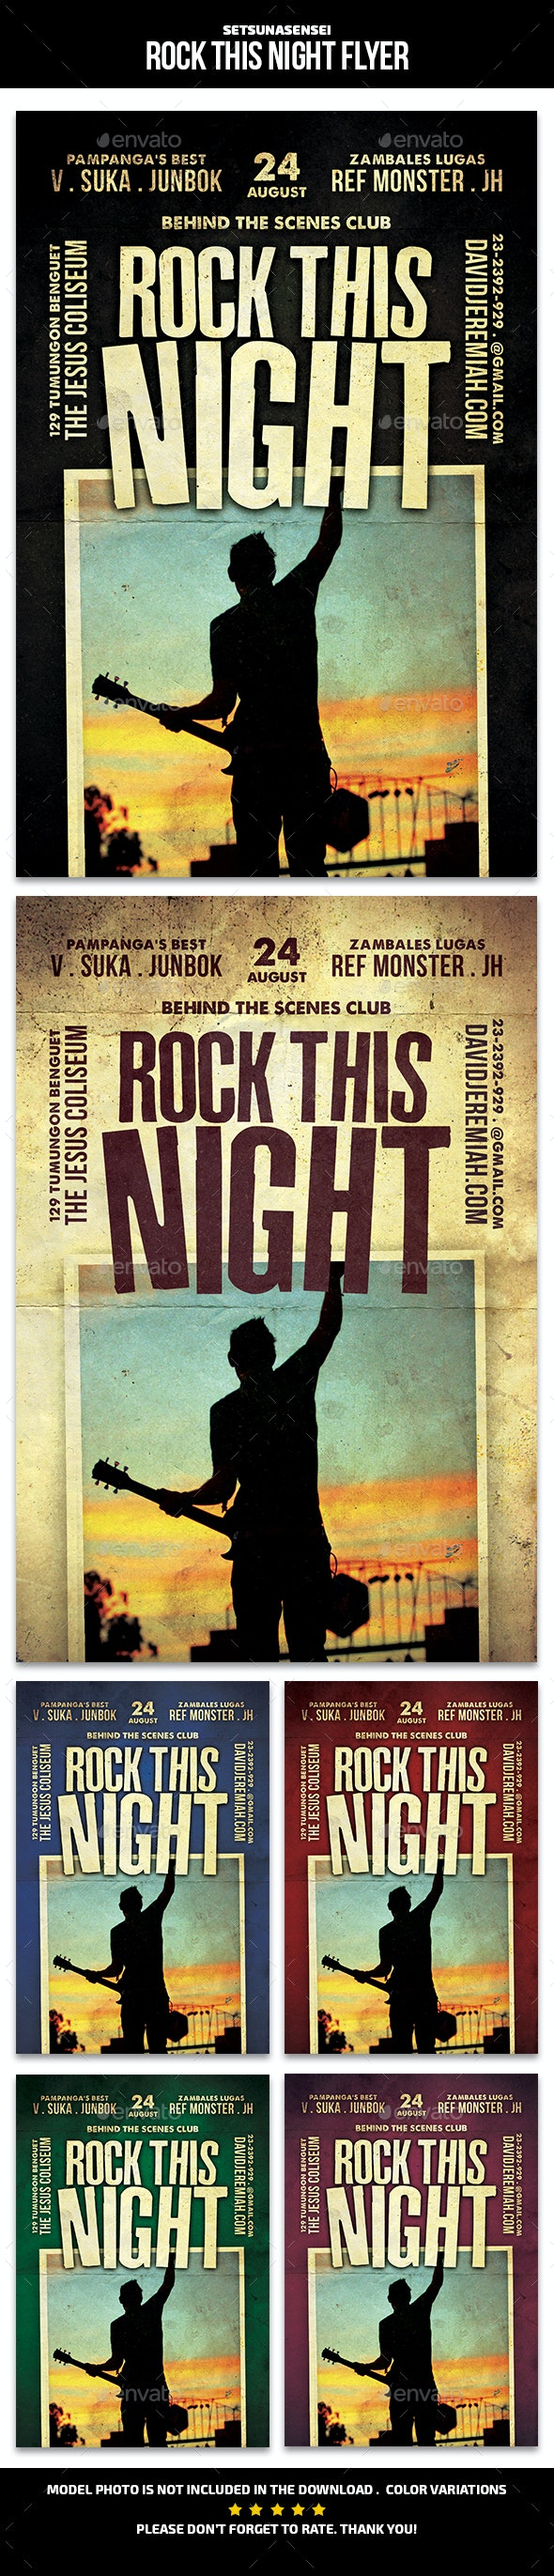 Rock This Night Flyer - Concerts Events